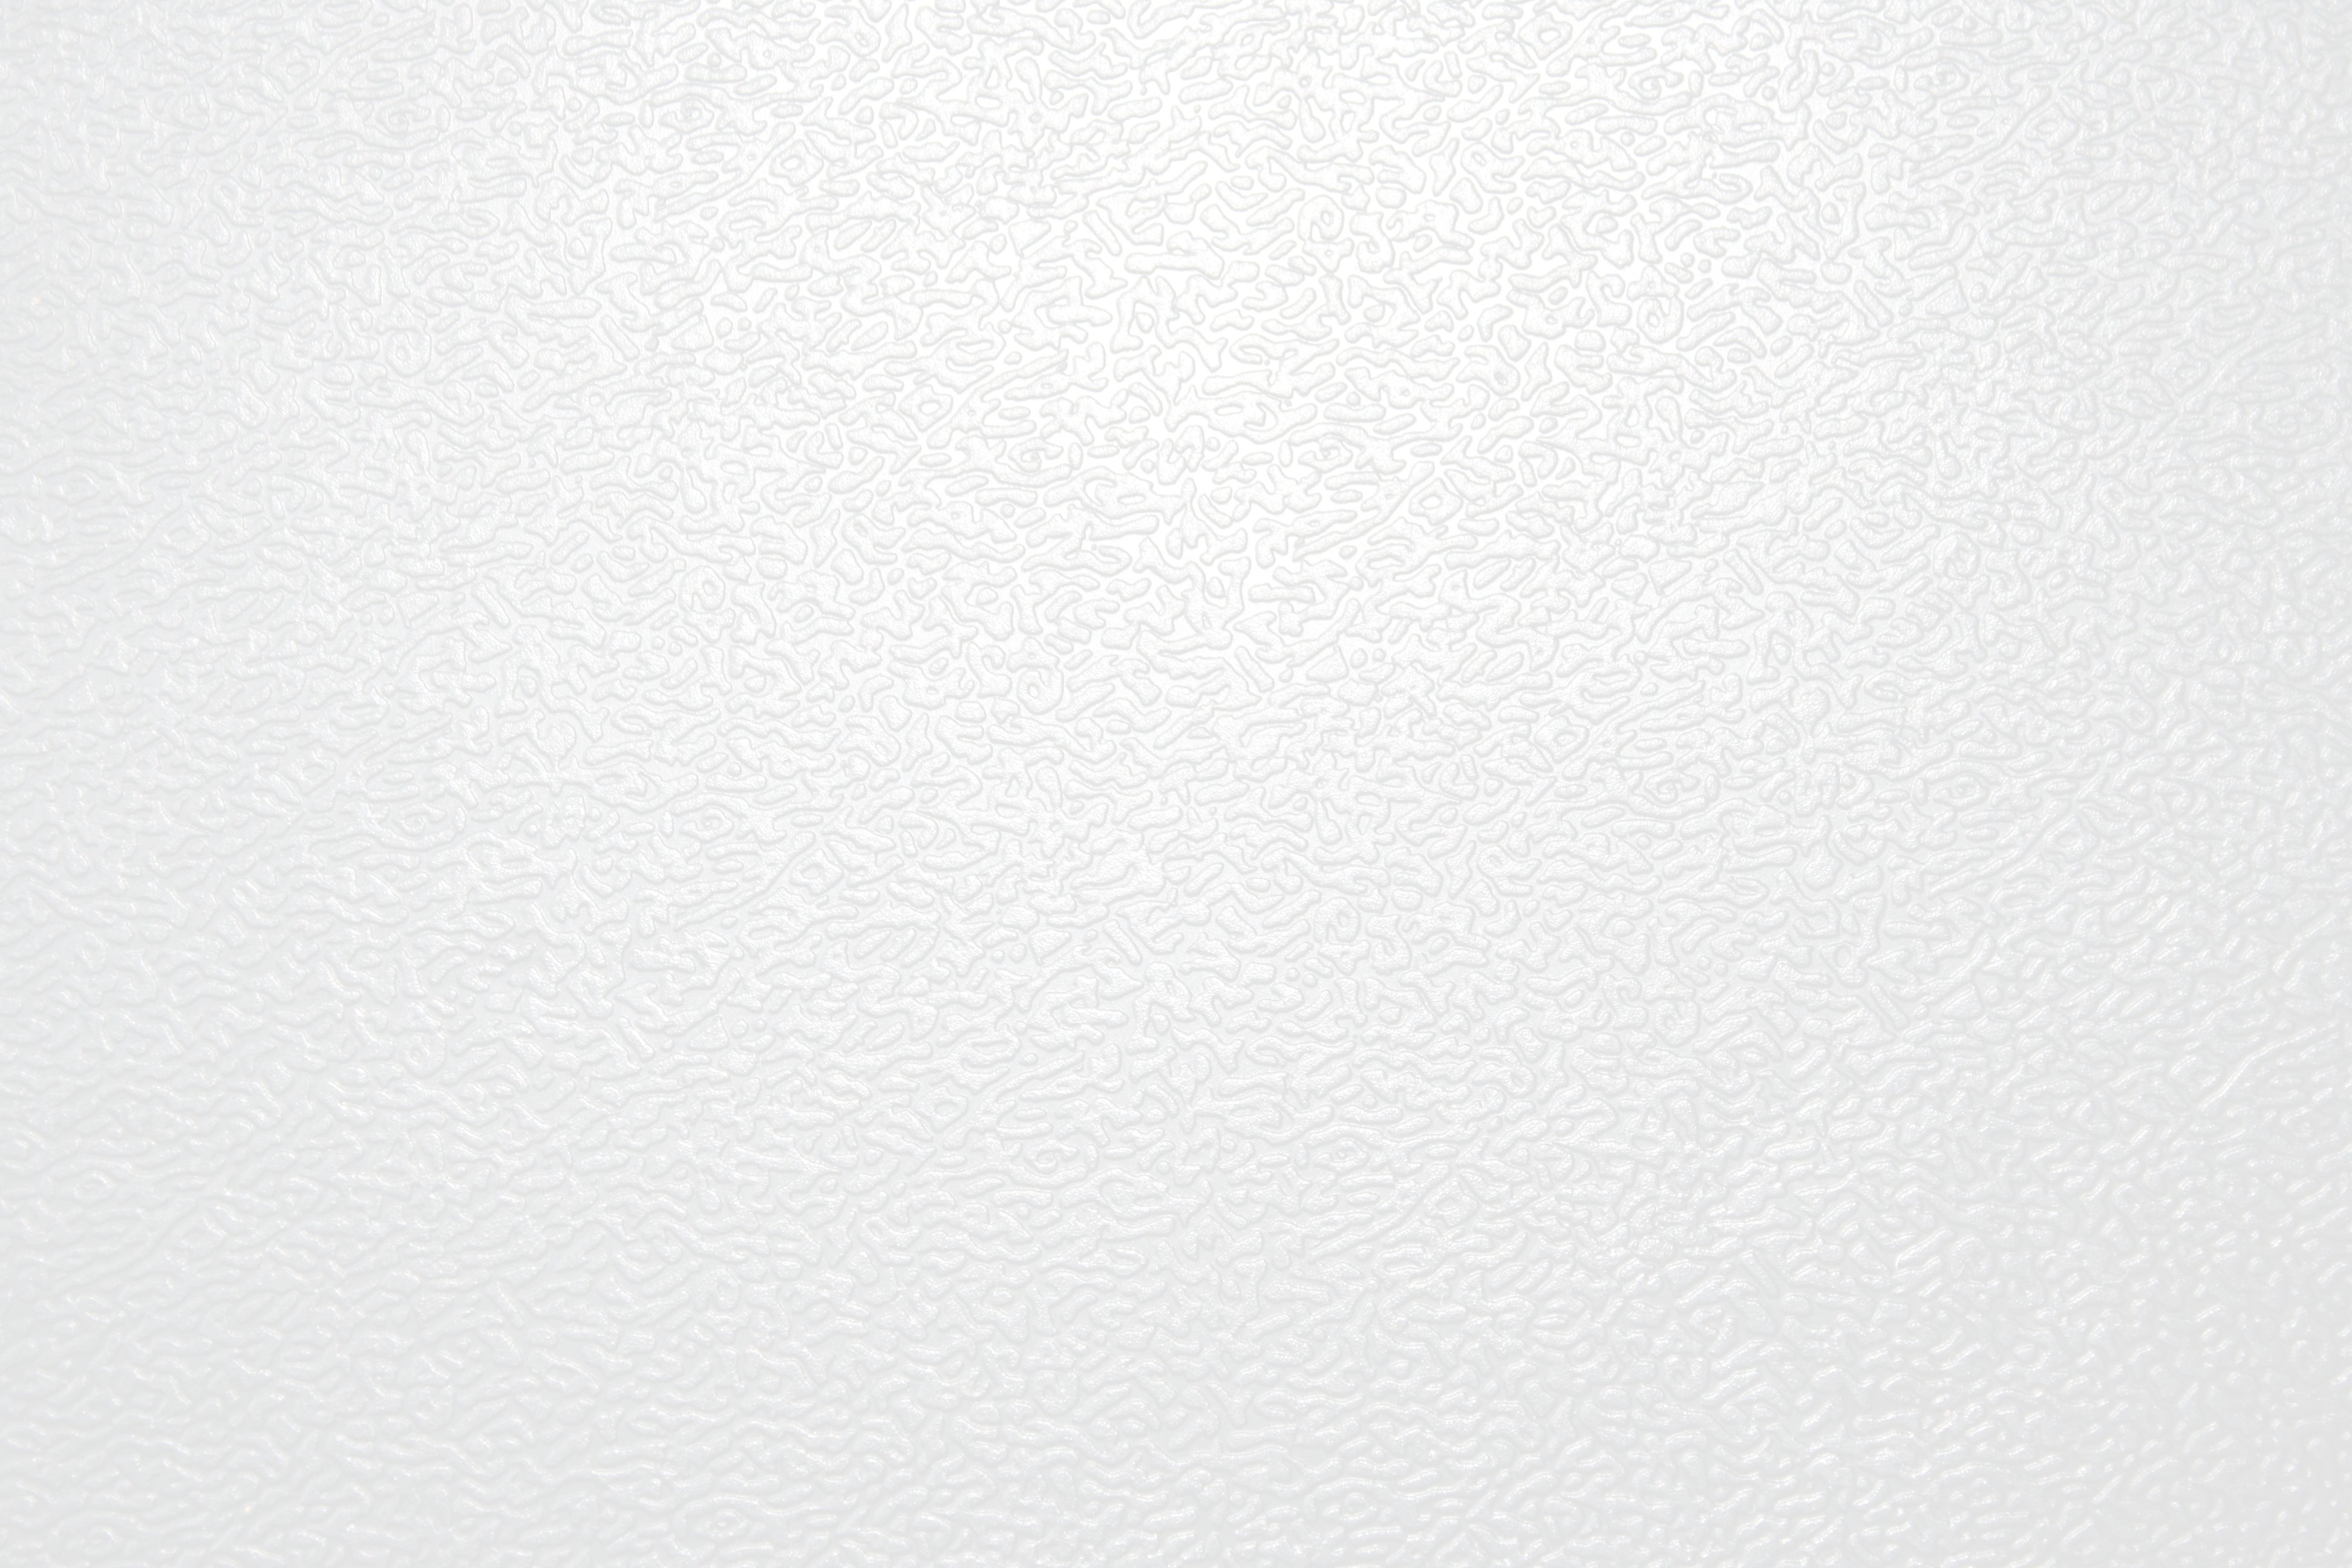 Textured white plastic close up picture free photograph for Free white texture